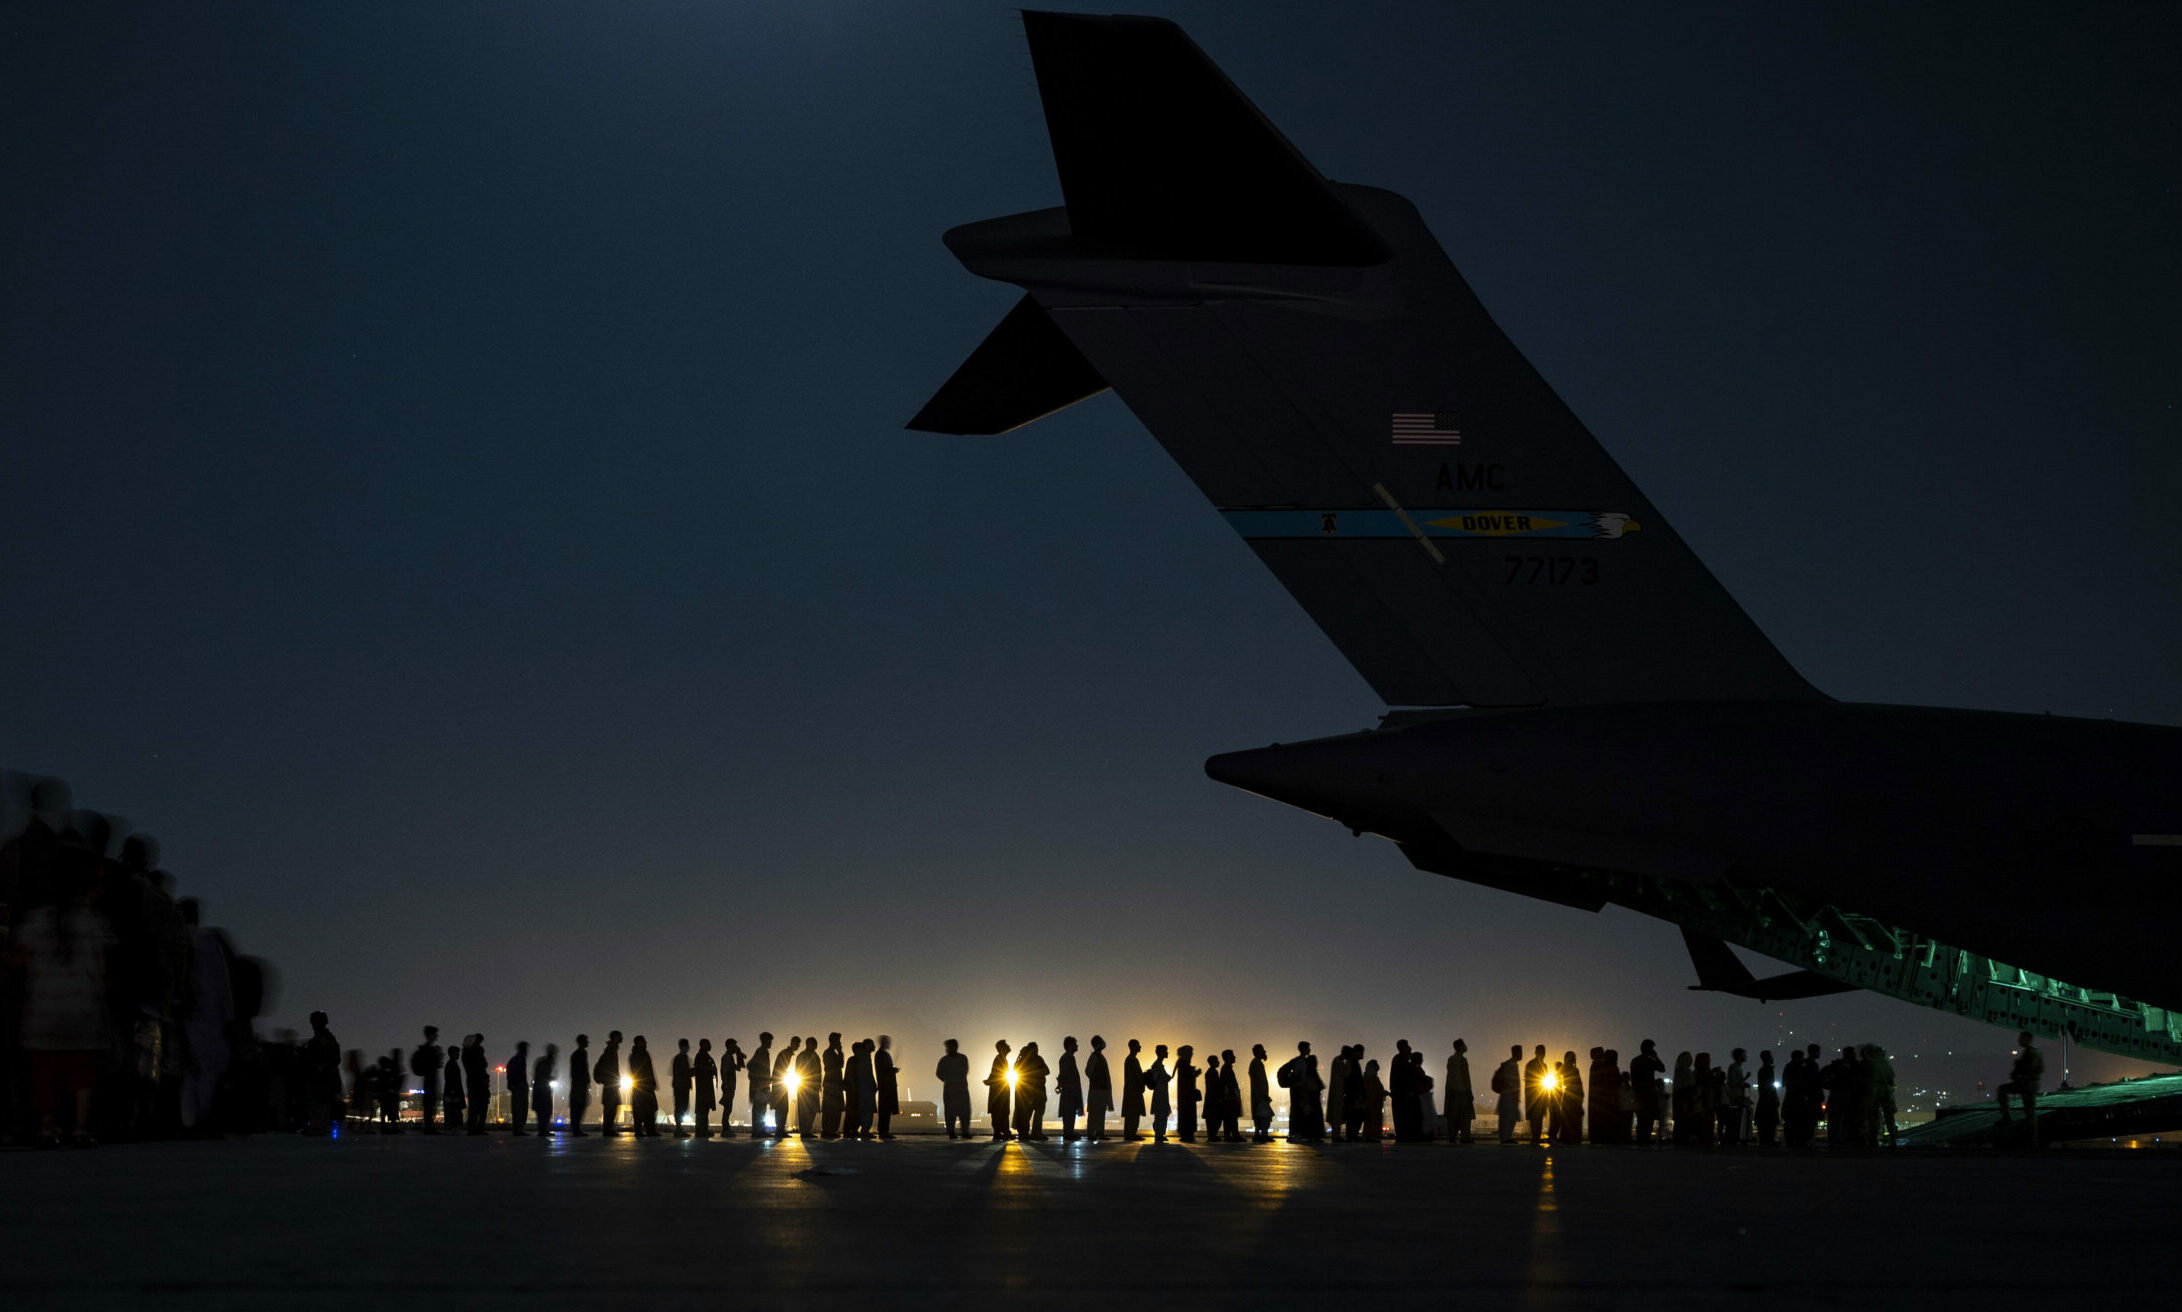 Evacuees from Afganistan boarding military plane at night